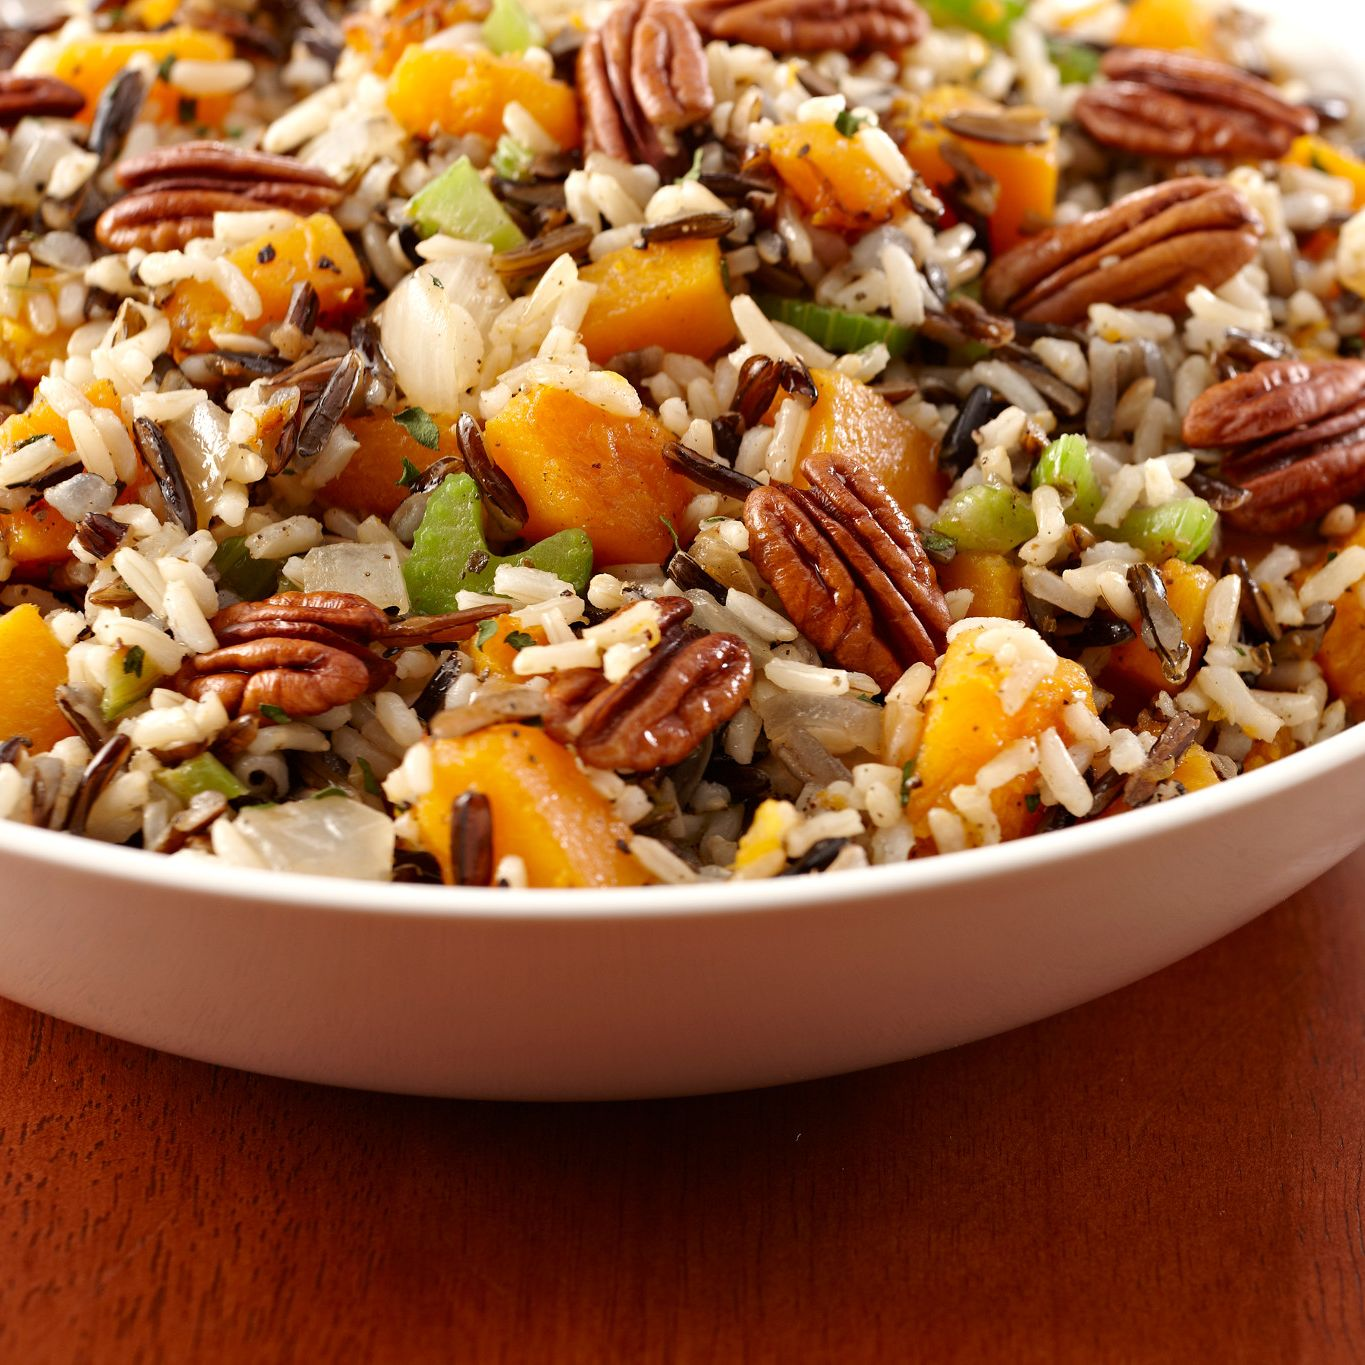 Herbed Wild Rice and Butternut Squash Stuffing